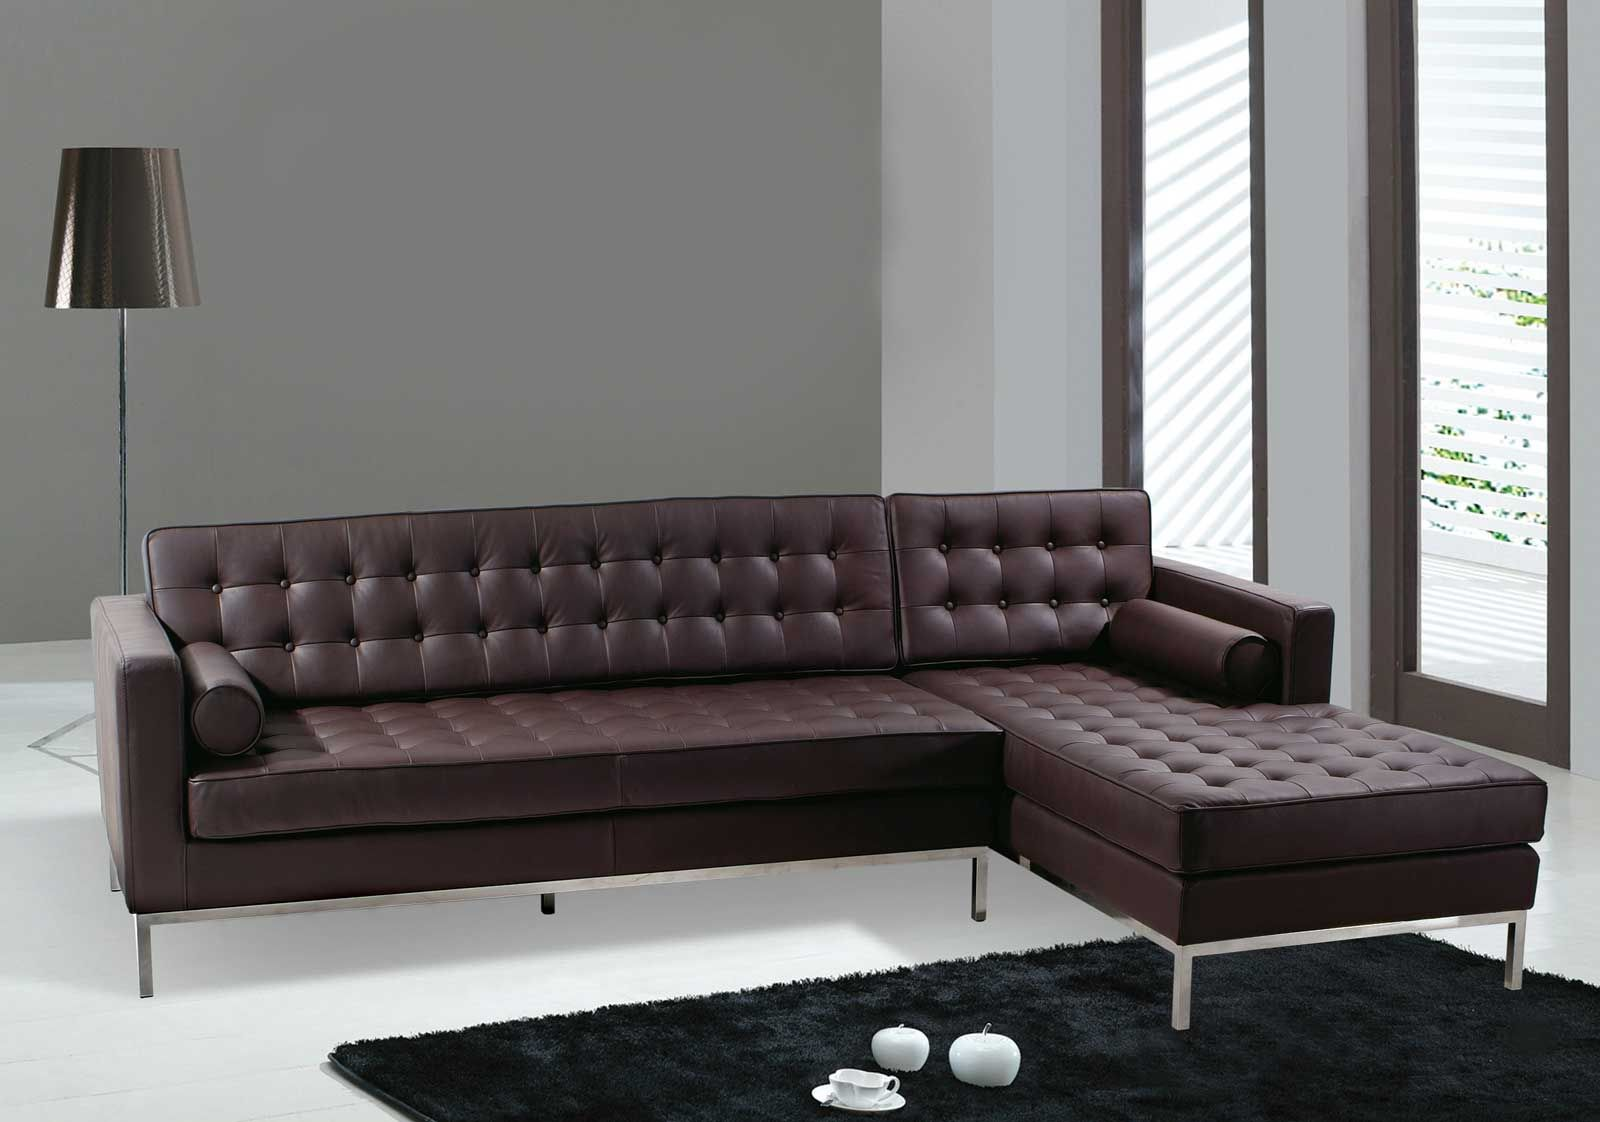 Modern Furniture Sofa leather sofa modern design, modern leather sofa design